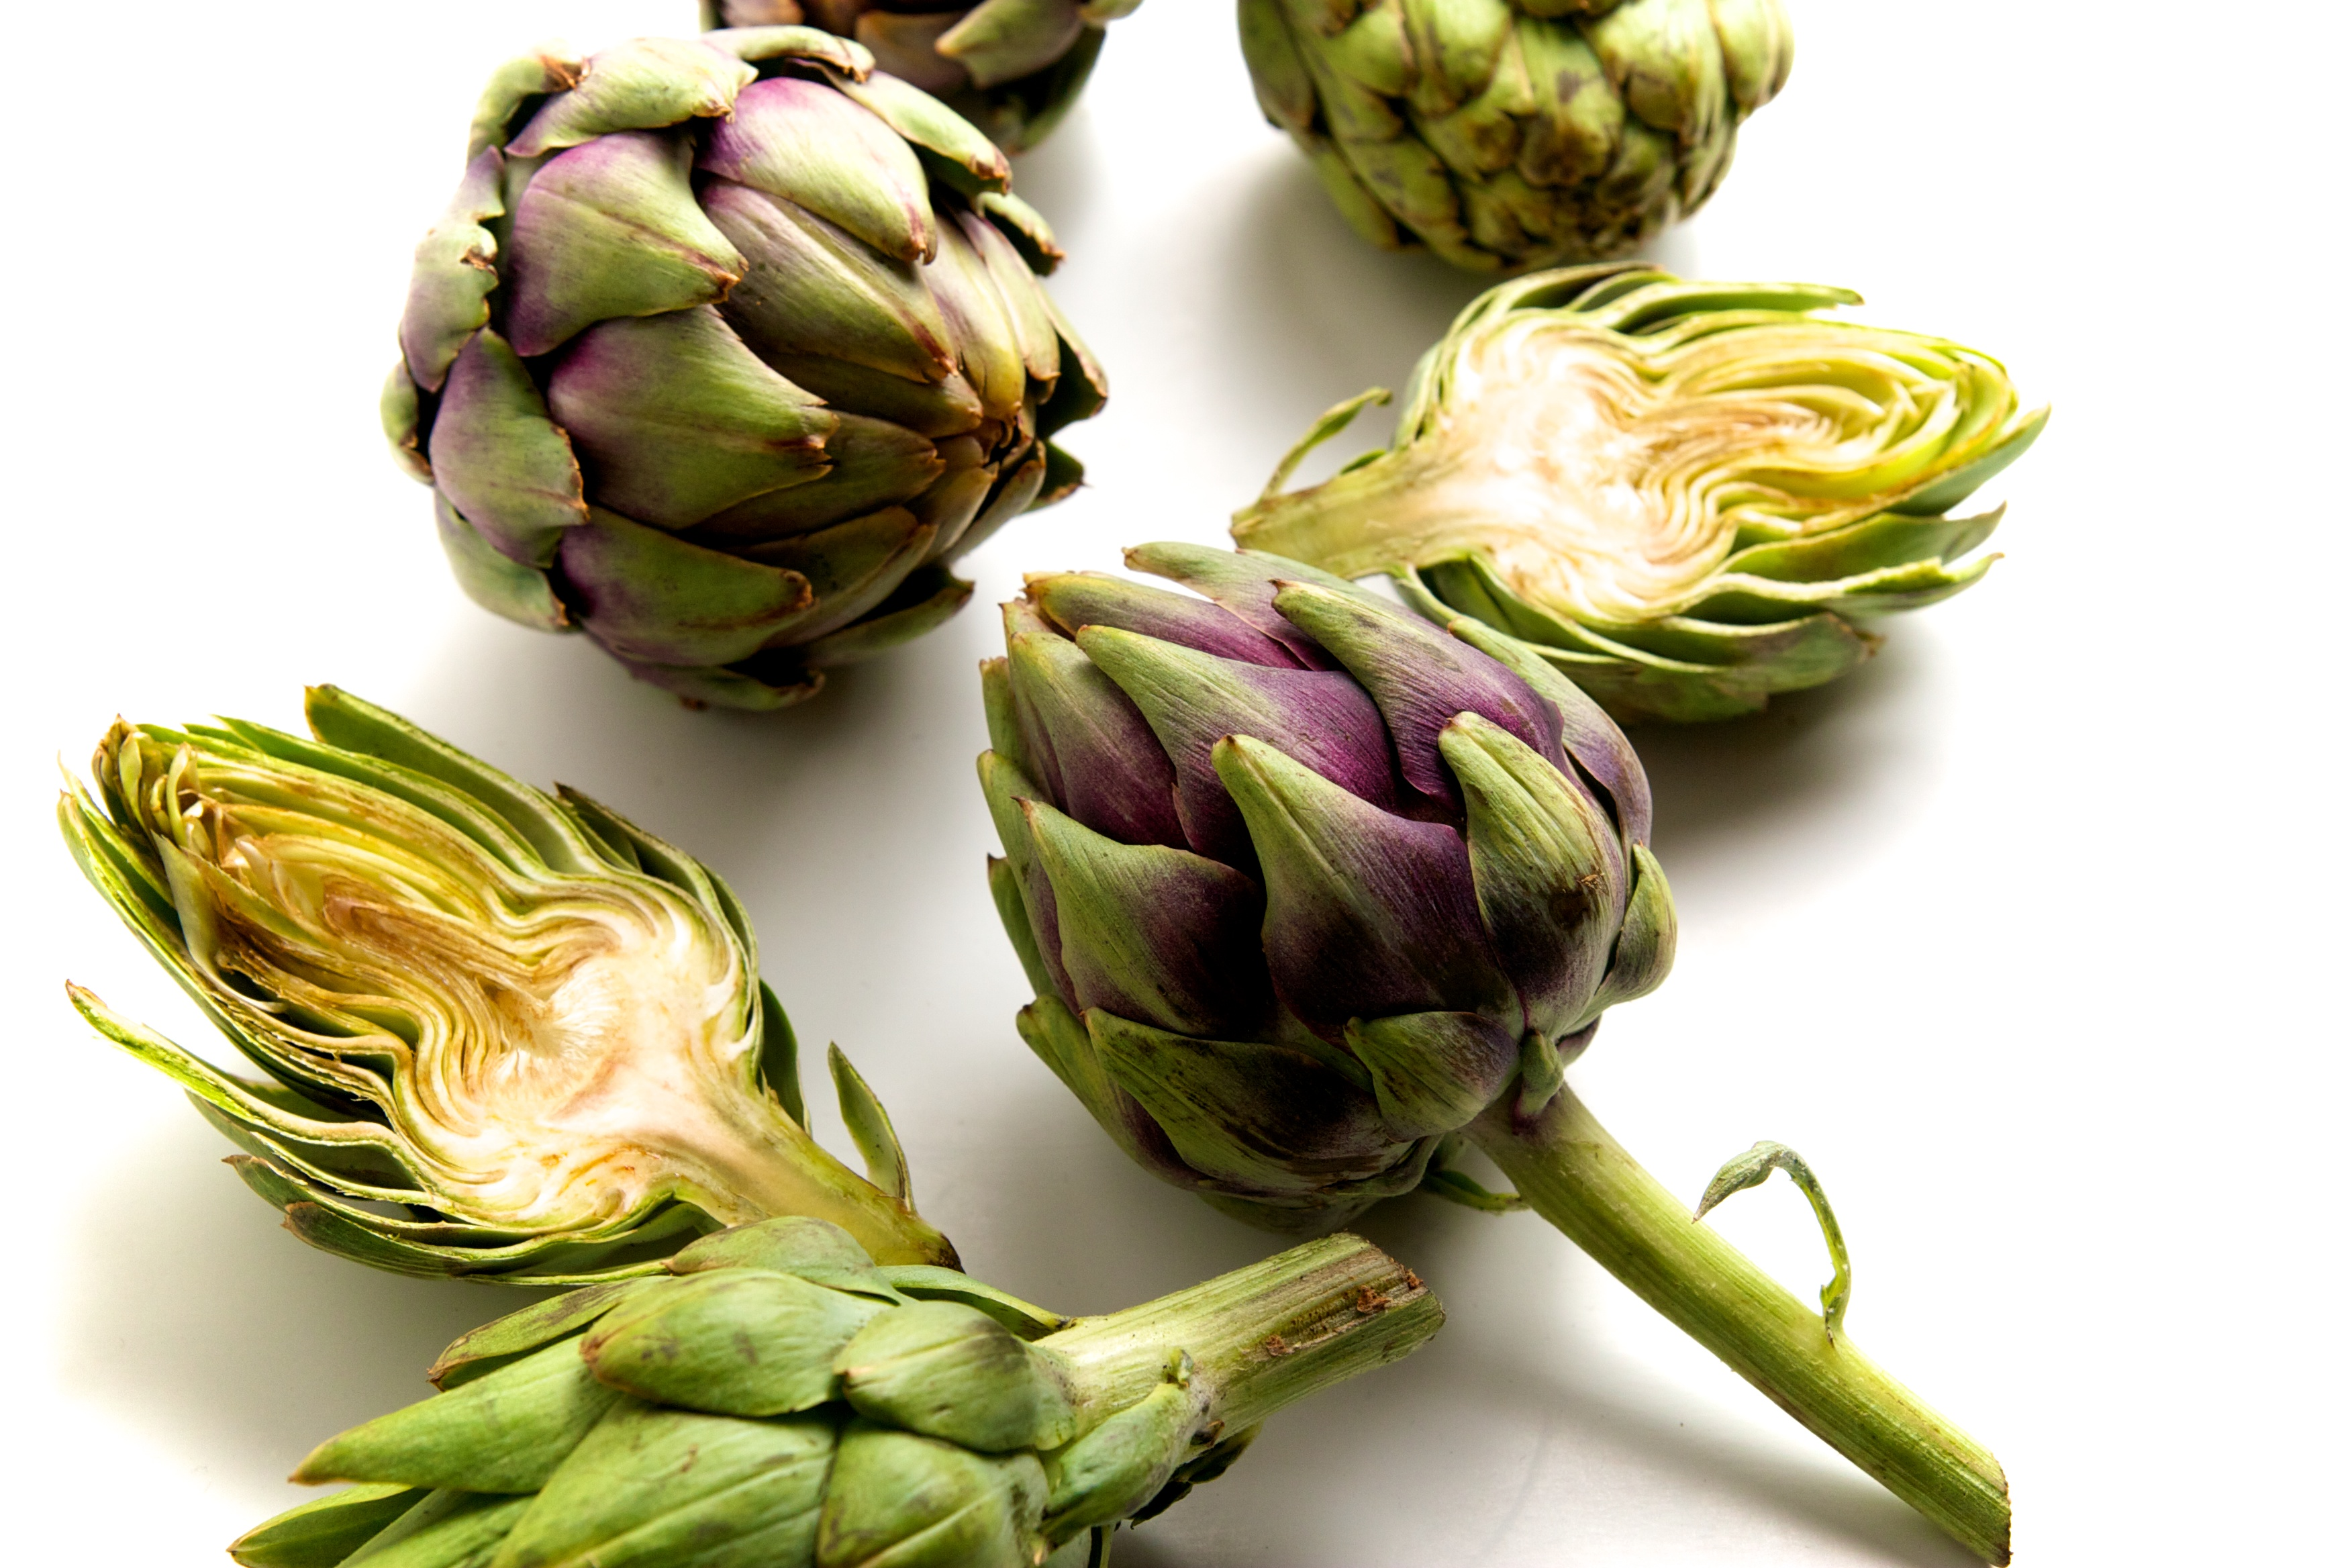 Pan Fried Artichokes in Lemon Garlic Brown Butter